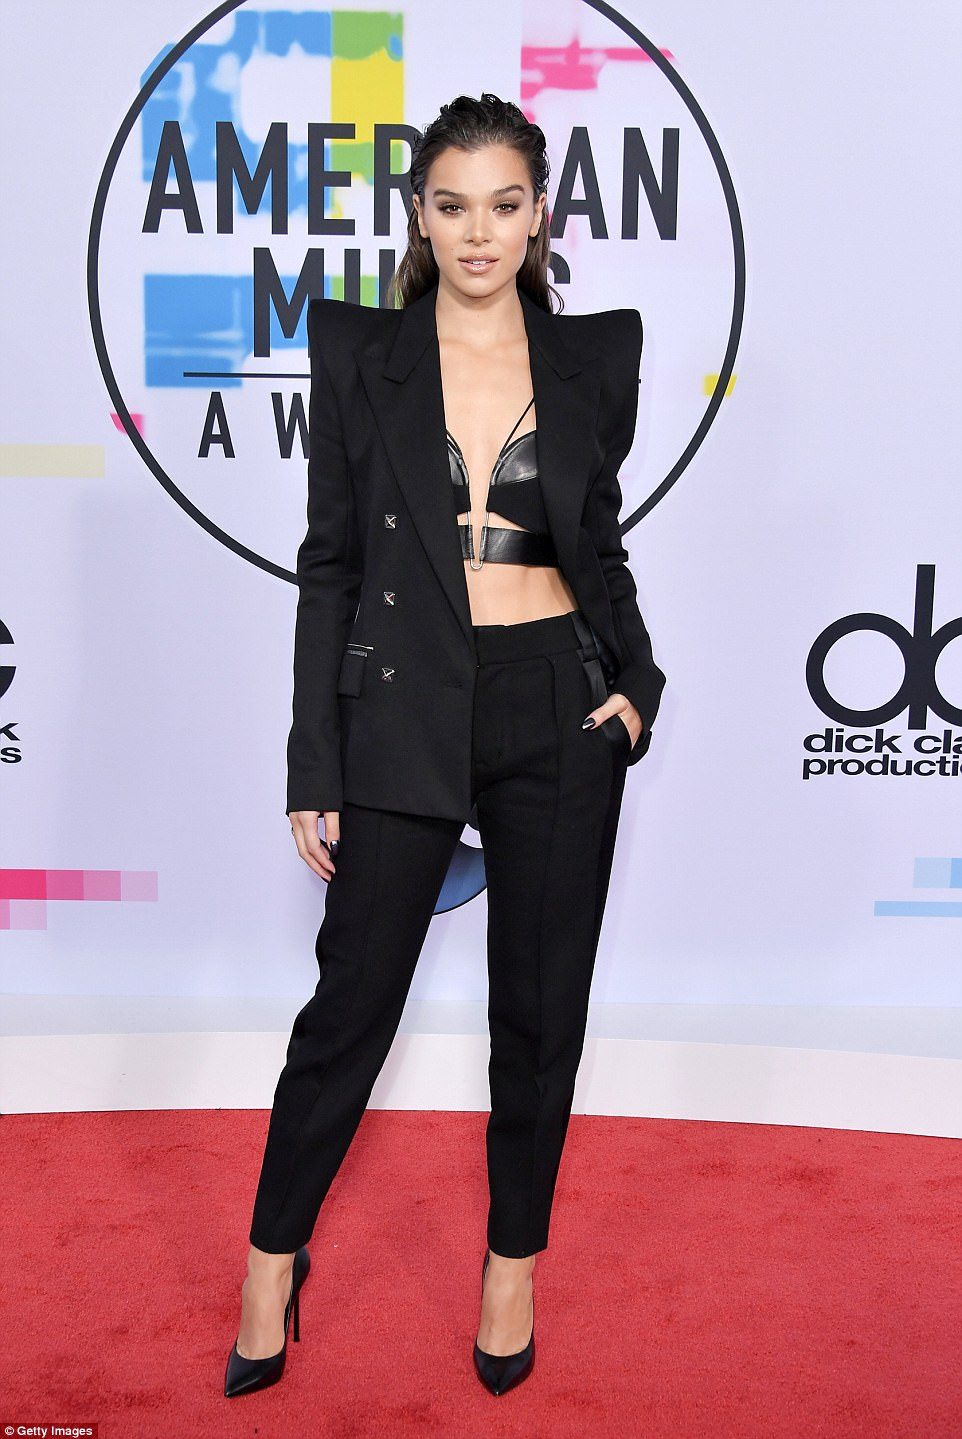 Stars hit the red carpet at the 2017 American Music Awards